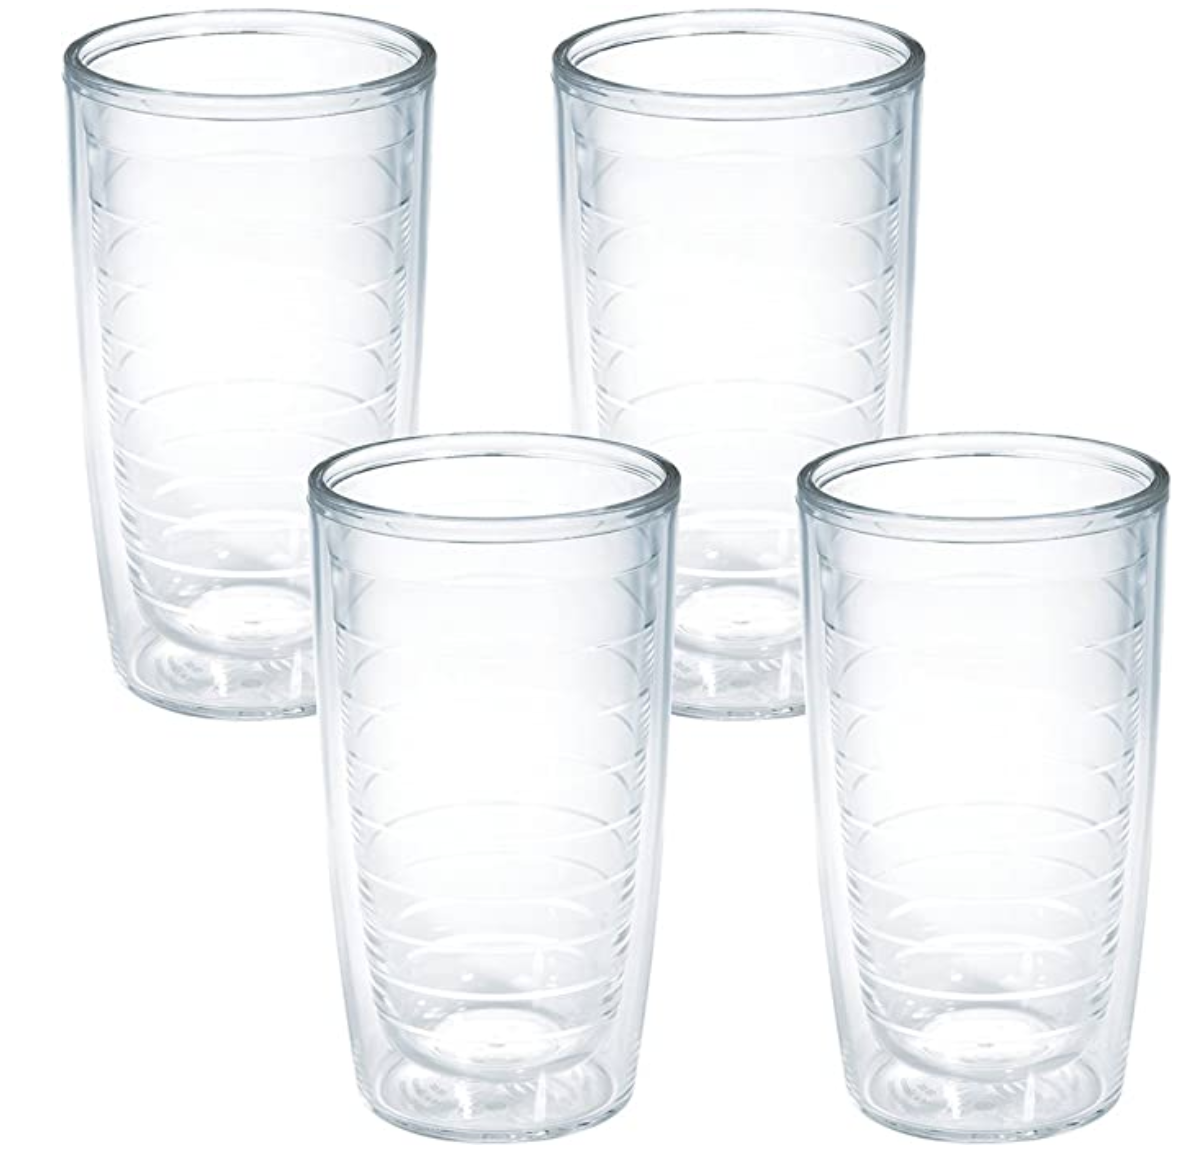 tervis tumblers | Best Amazon Products by popular Houston life and style blog: image of Amazon clear tumbler glasses.